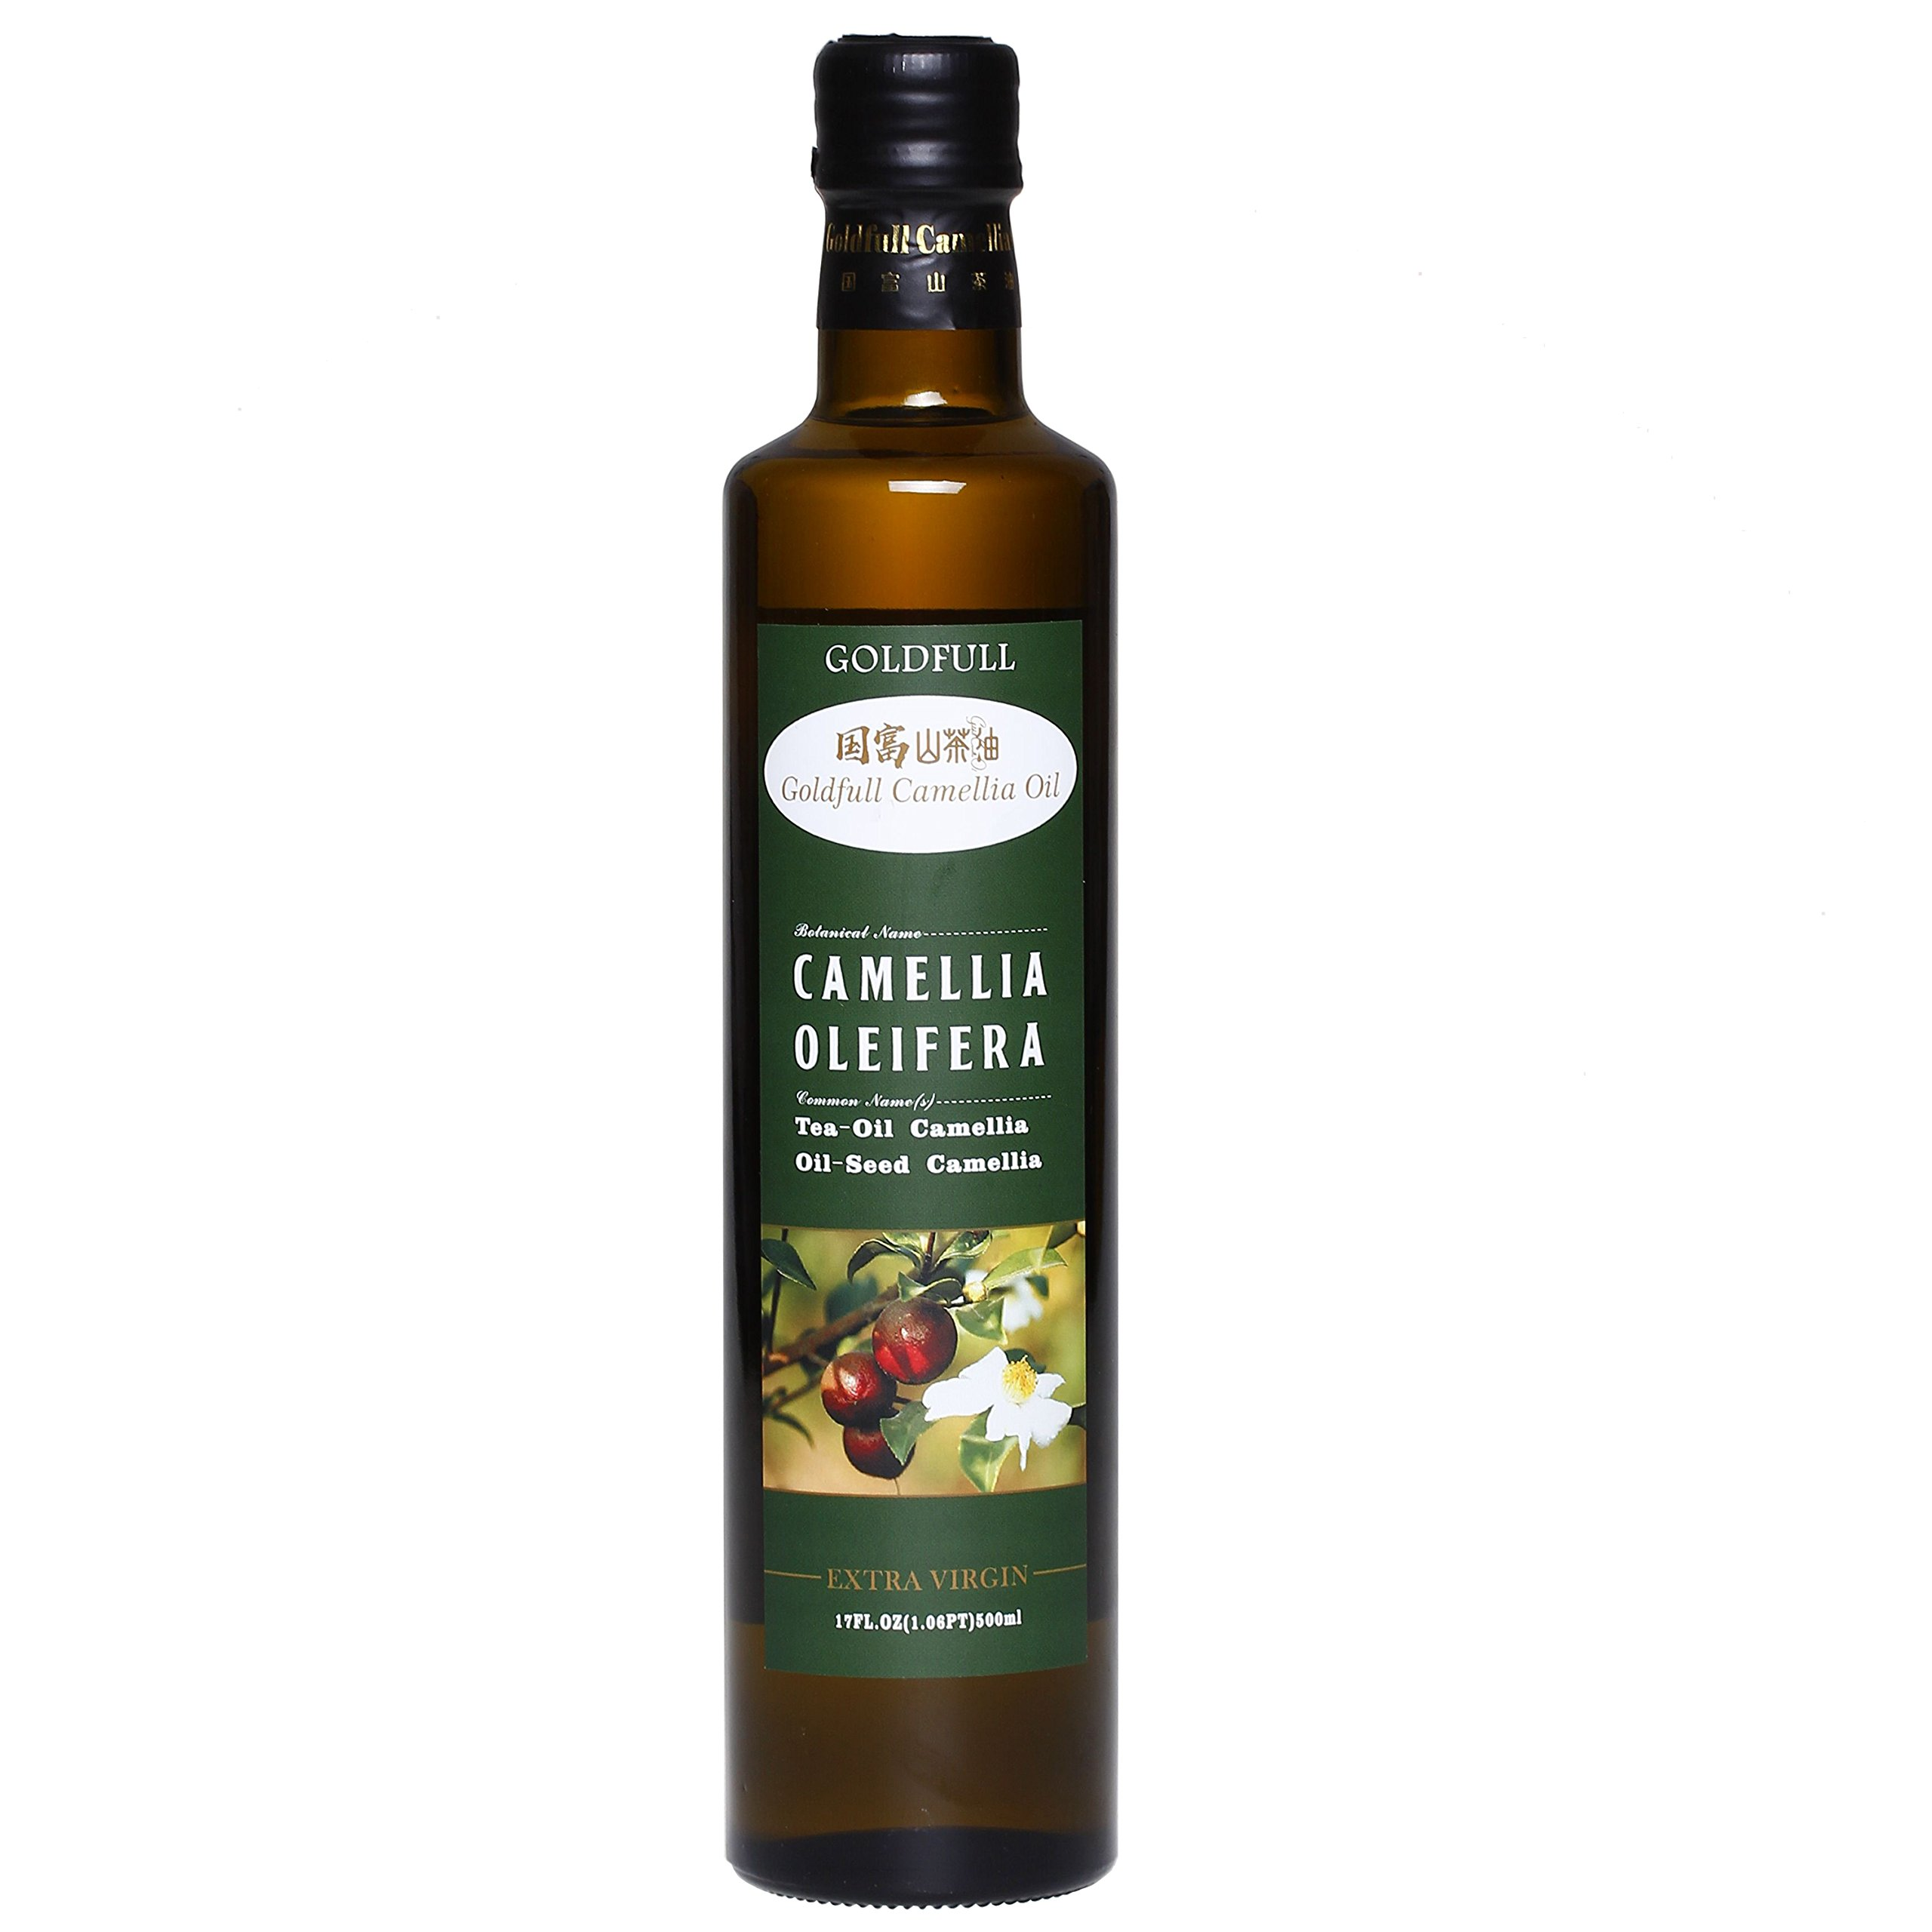 Goldfull Camellia Oil ,Tea Seed Oil,Camellia Seed Oil, Cold Pressed Extra Virgin Cooking Oil ,Camellia Oleifera Oil, Chinese Olive Oil, Natural Flavor, Current Harvest,500ml